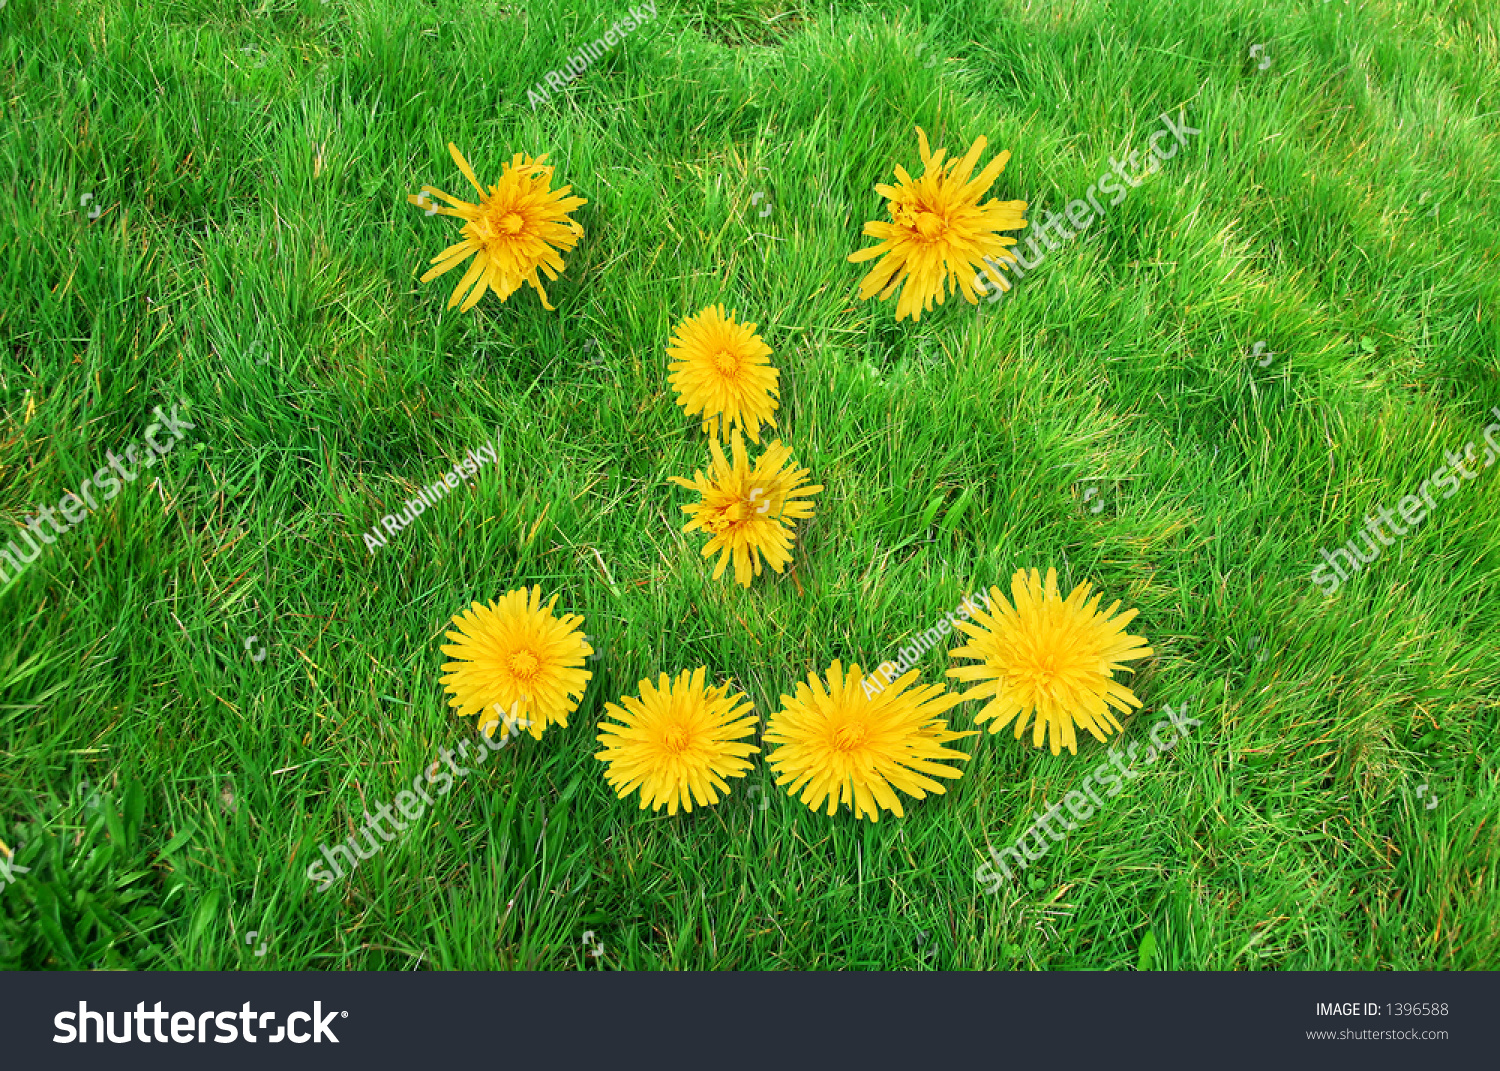 Green Smiley Face Stock Photos: Smiley Face Sign Formed By Yellow Flowers On Green Grass